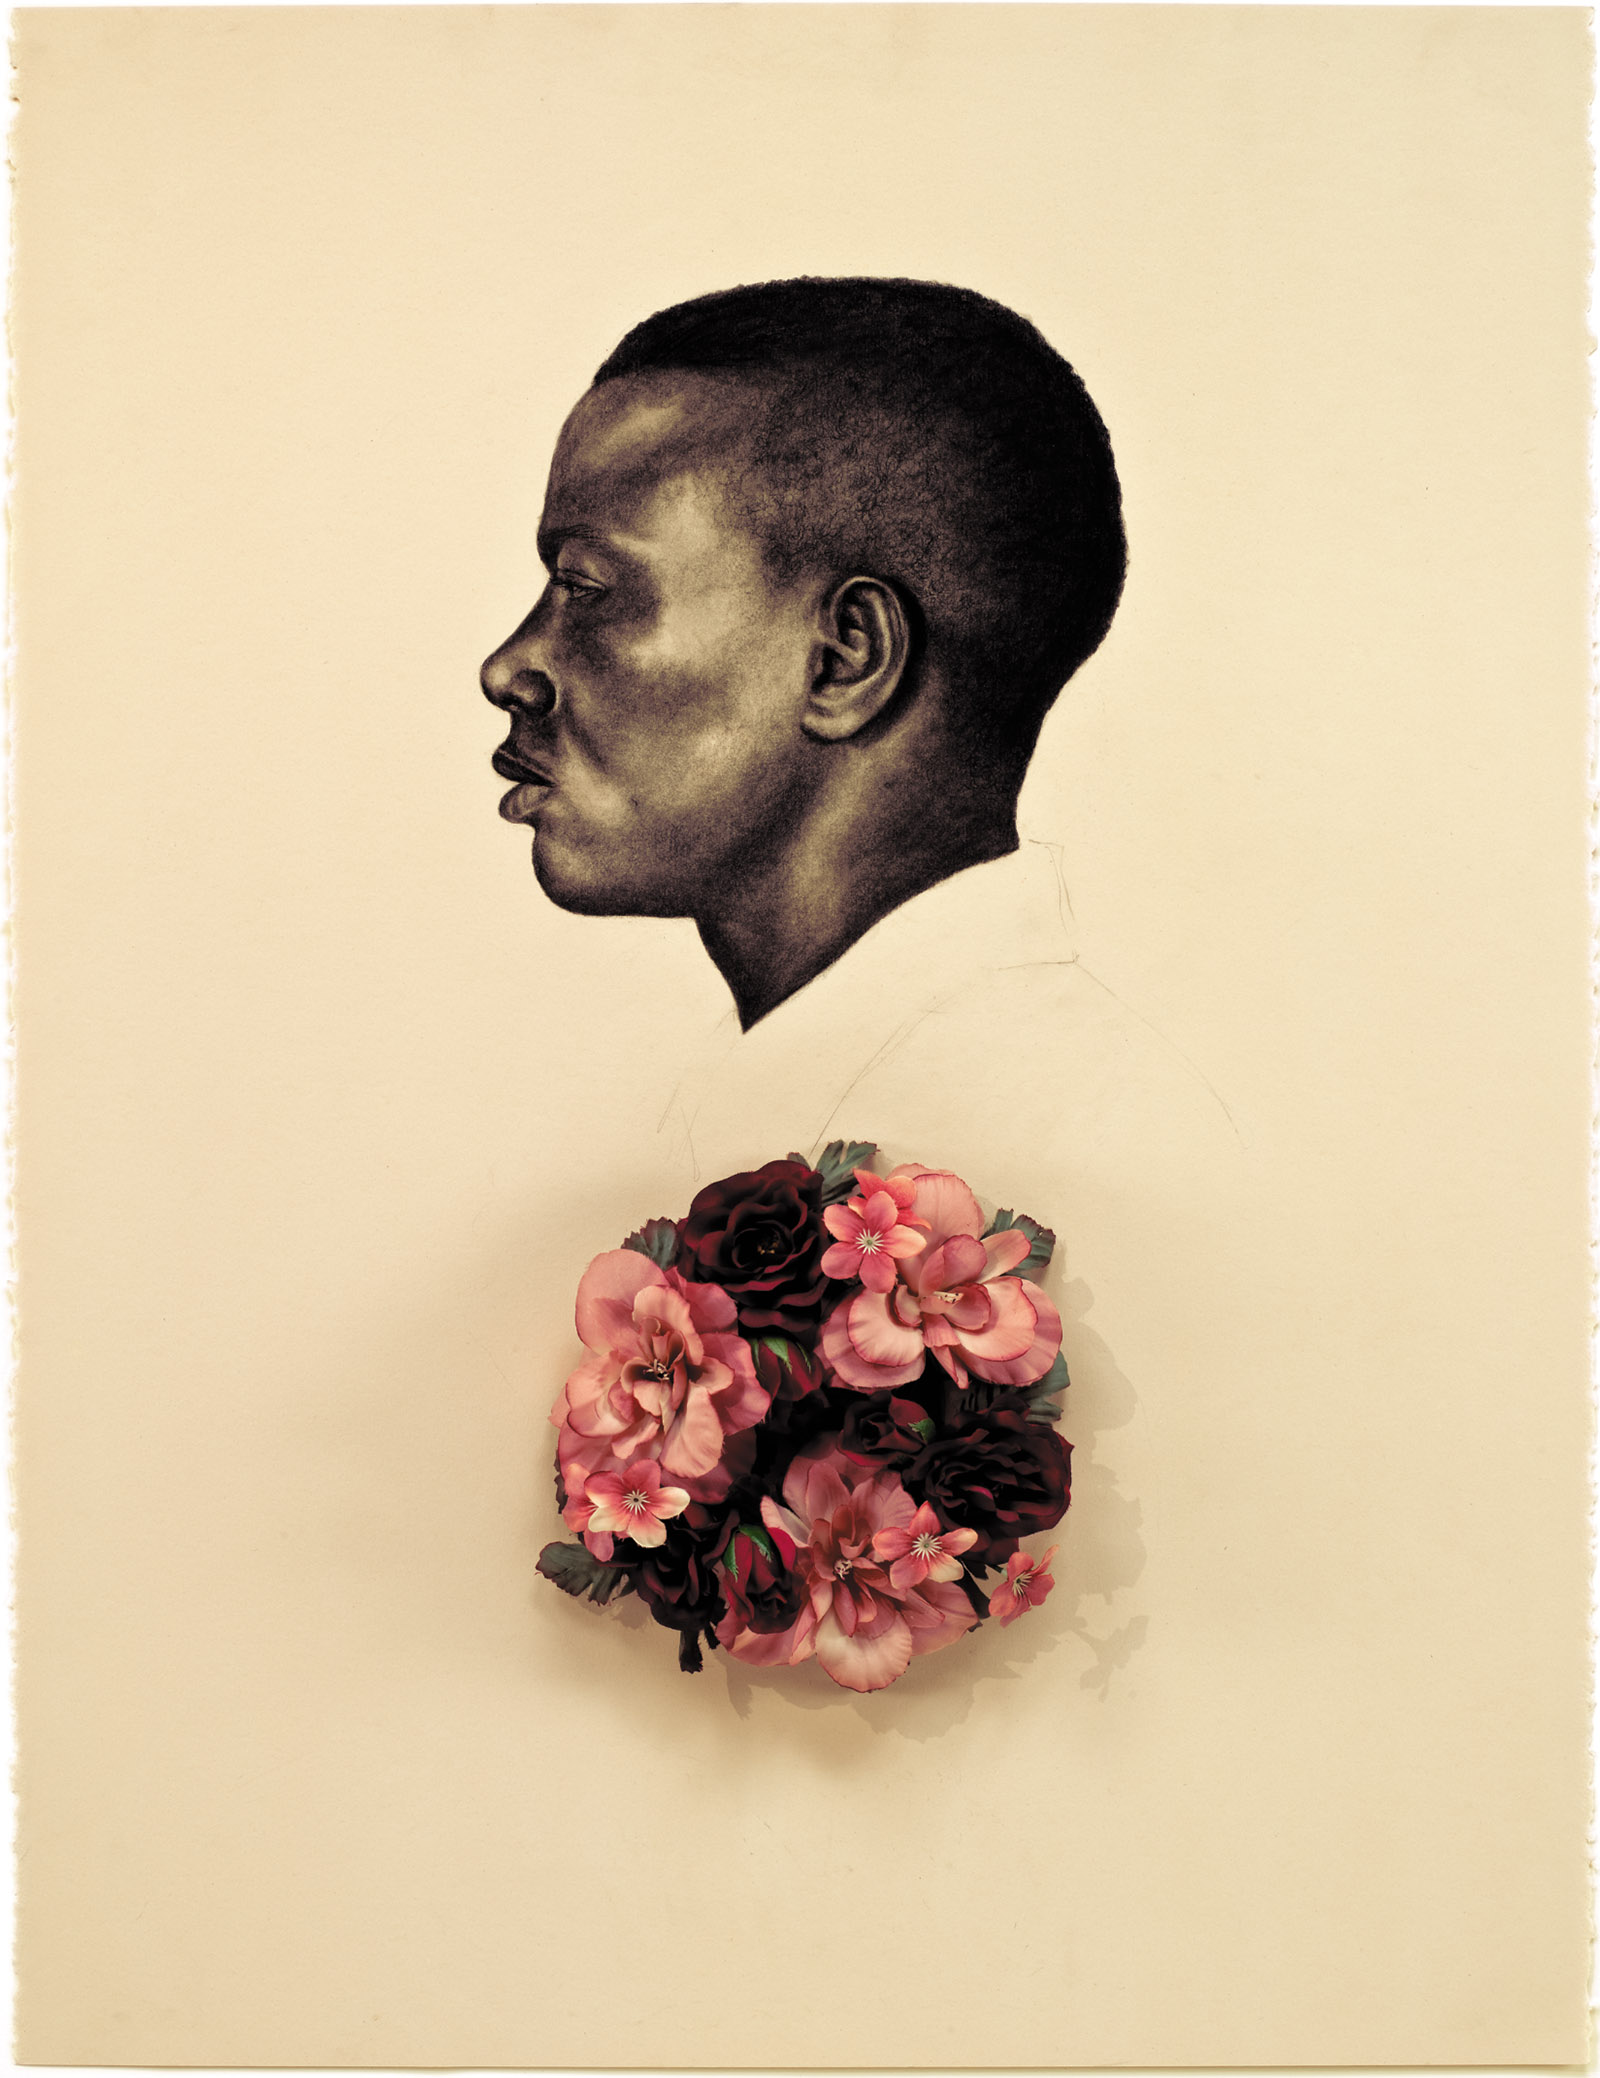 Whitfield Lovell's Kin VII (Scent of Magnolia), 2011;